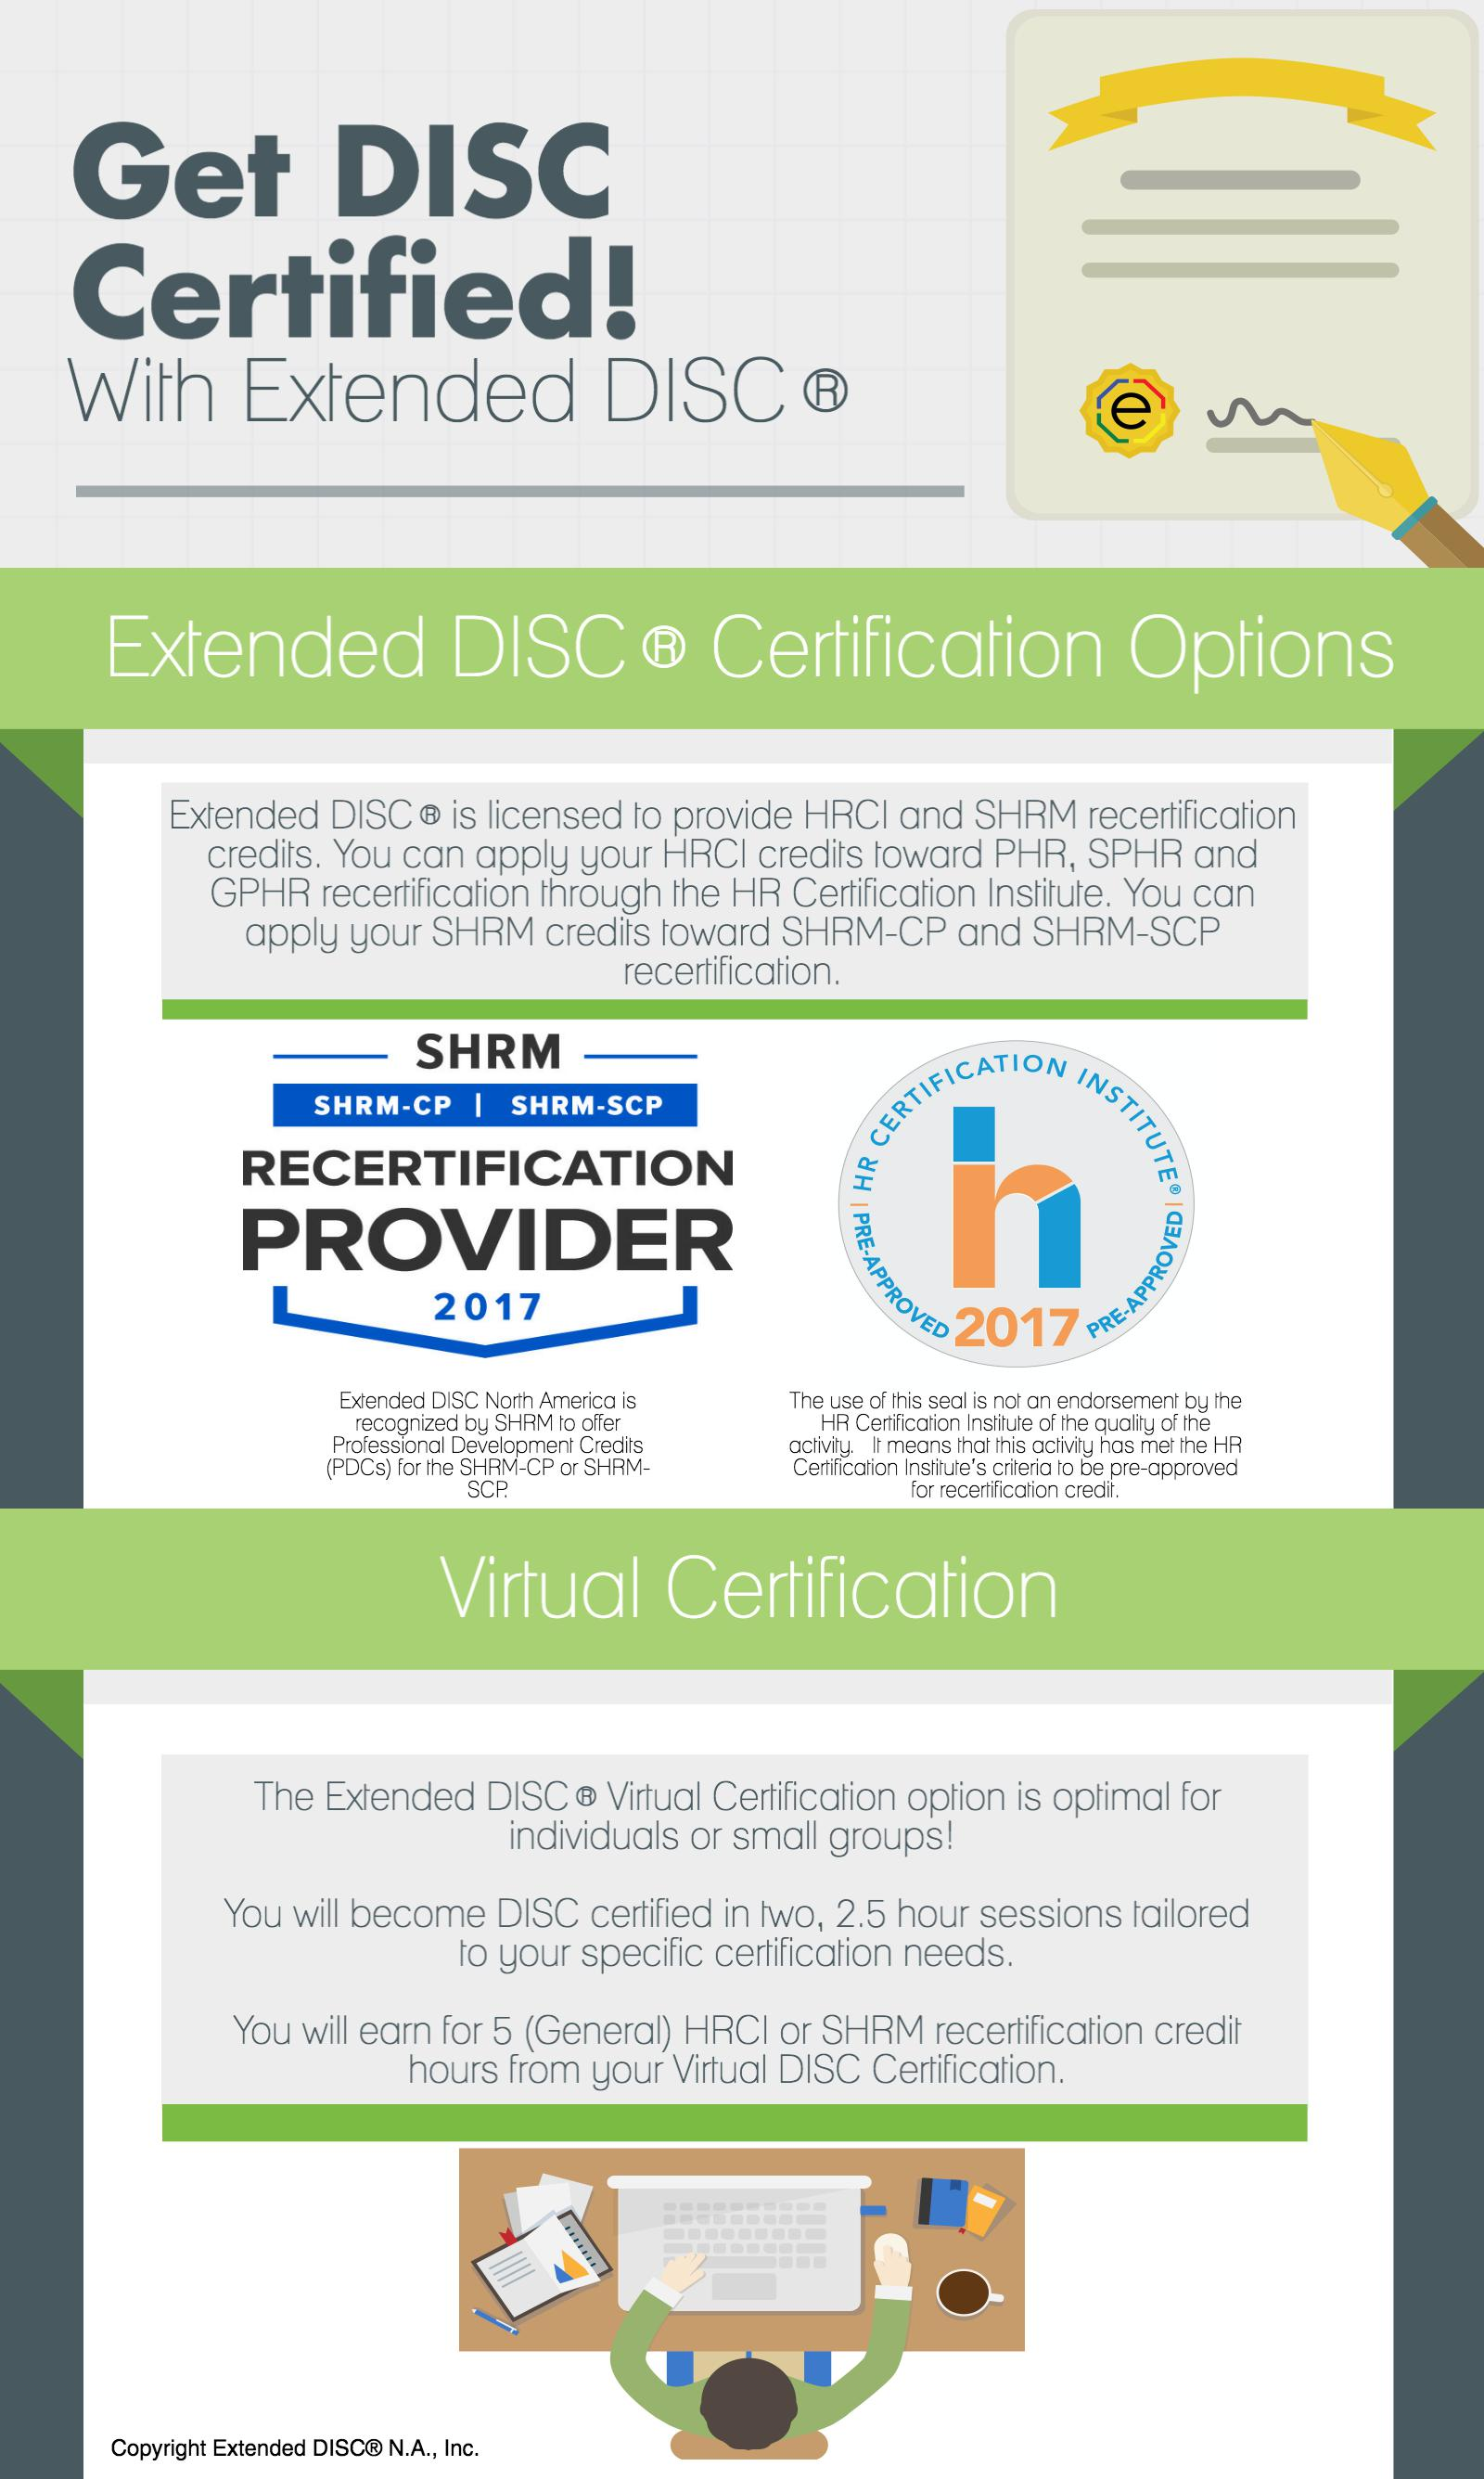 Extended DISC Certification: Virtual